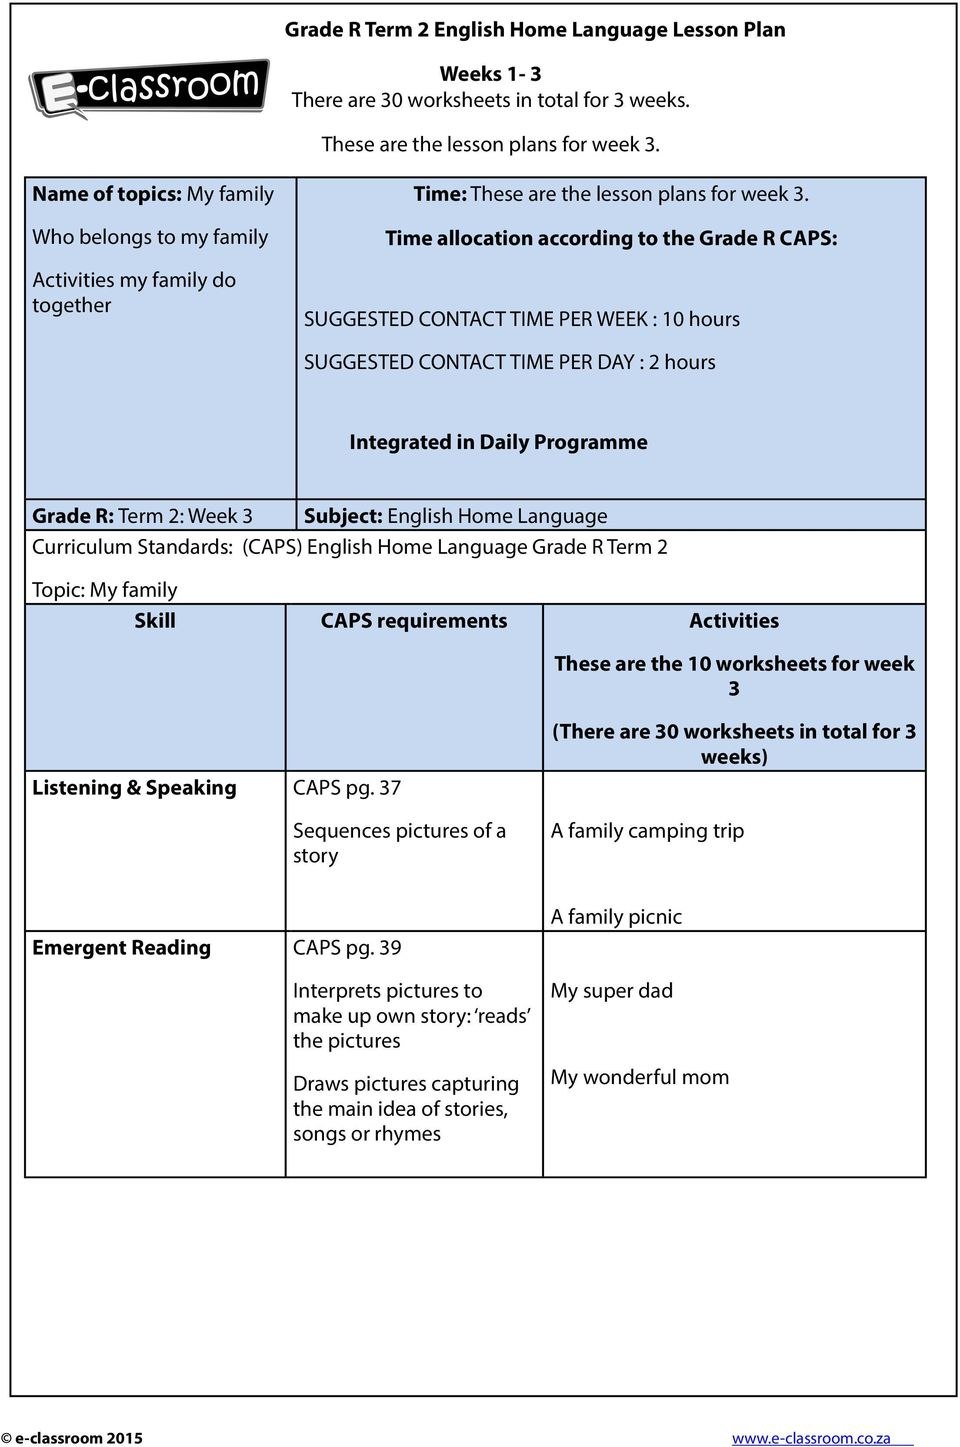 hight resolution of Grade R Term 2 English Home Language Lesson Plan. Weeks 1-3 There are 30  worksheets in total for 3 weeks. These are the lesson plans for week 3. -  PDF Free Download